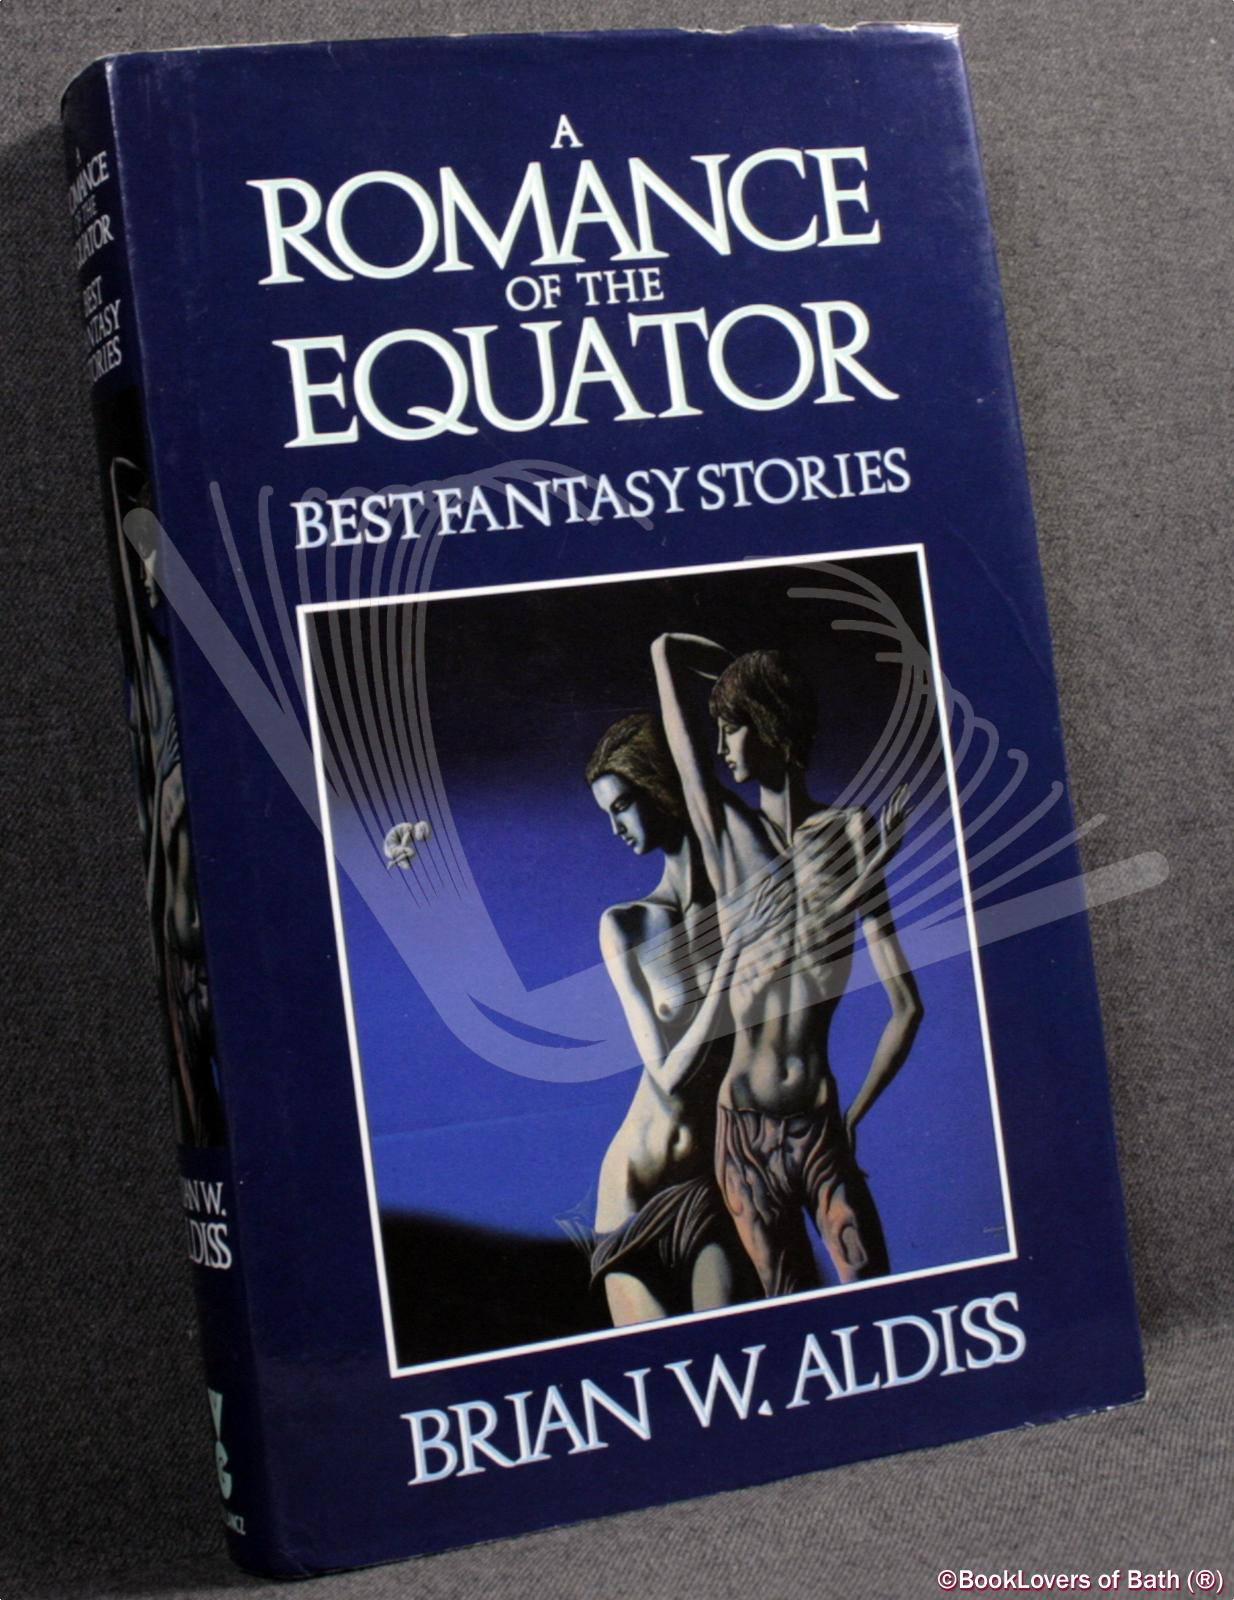 A Romance of the Equator - Brian W. [Wilson] Aldiss